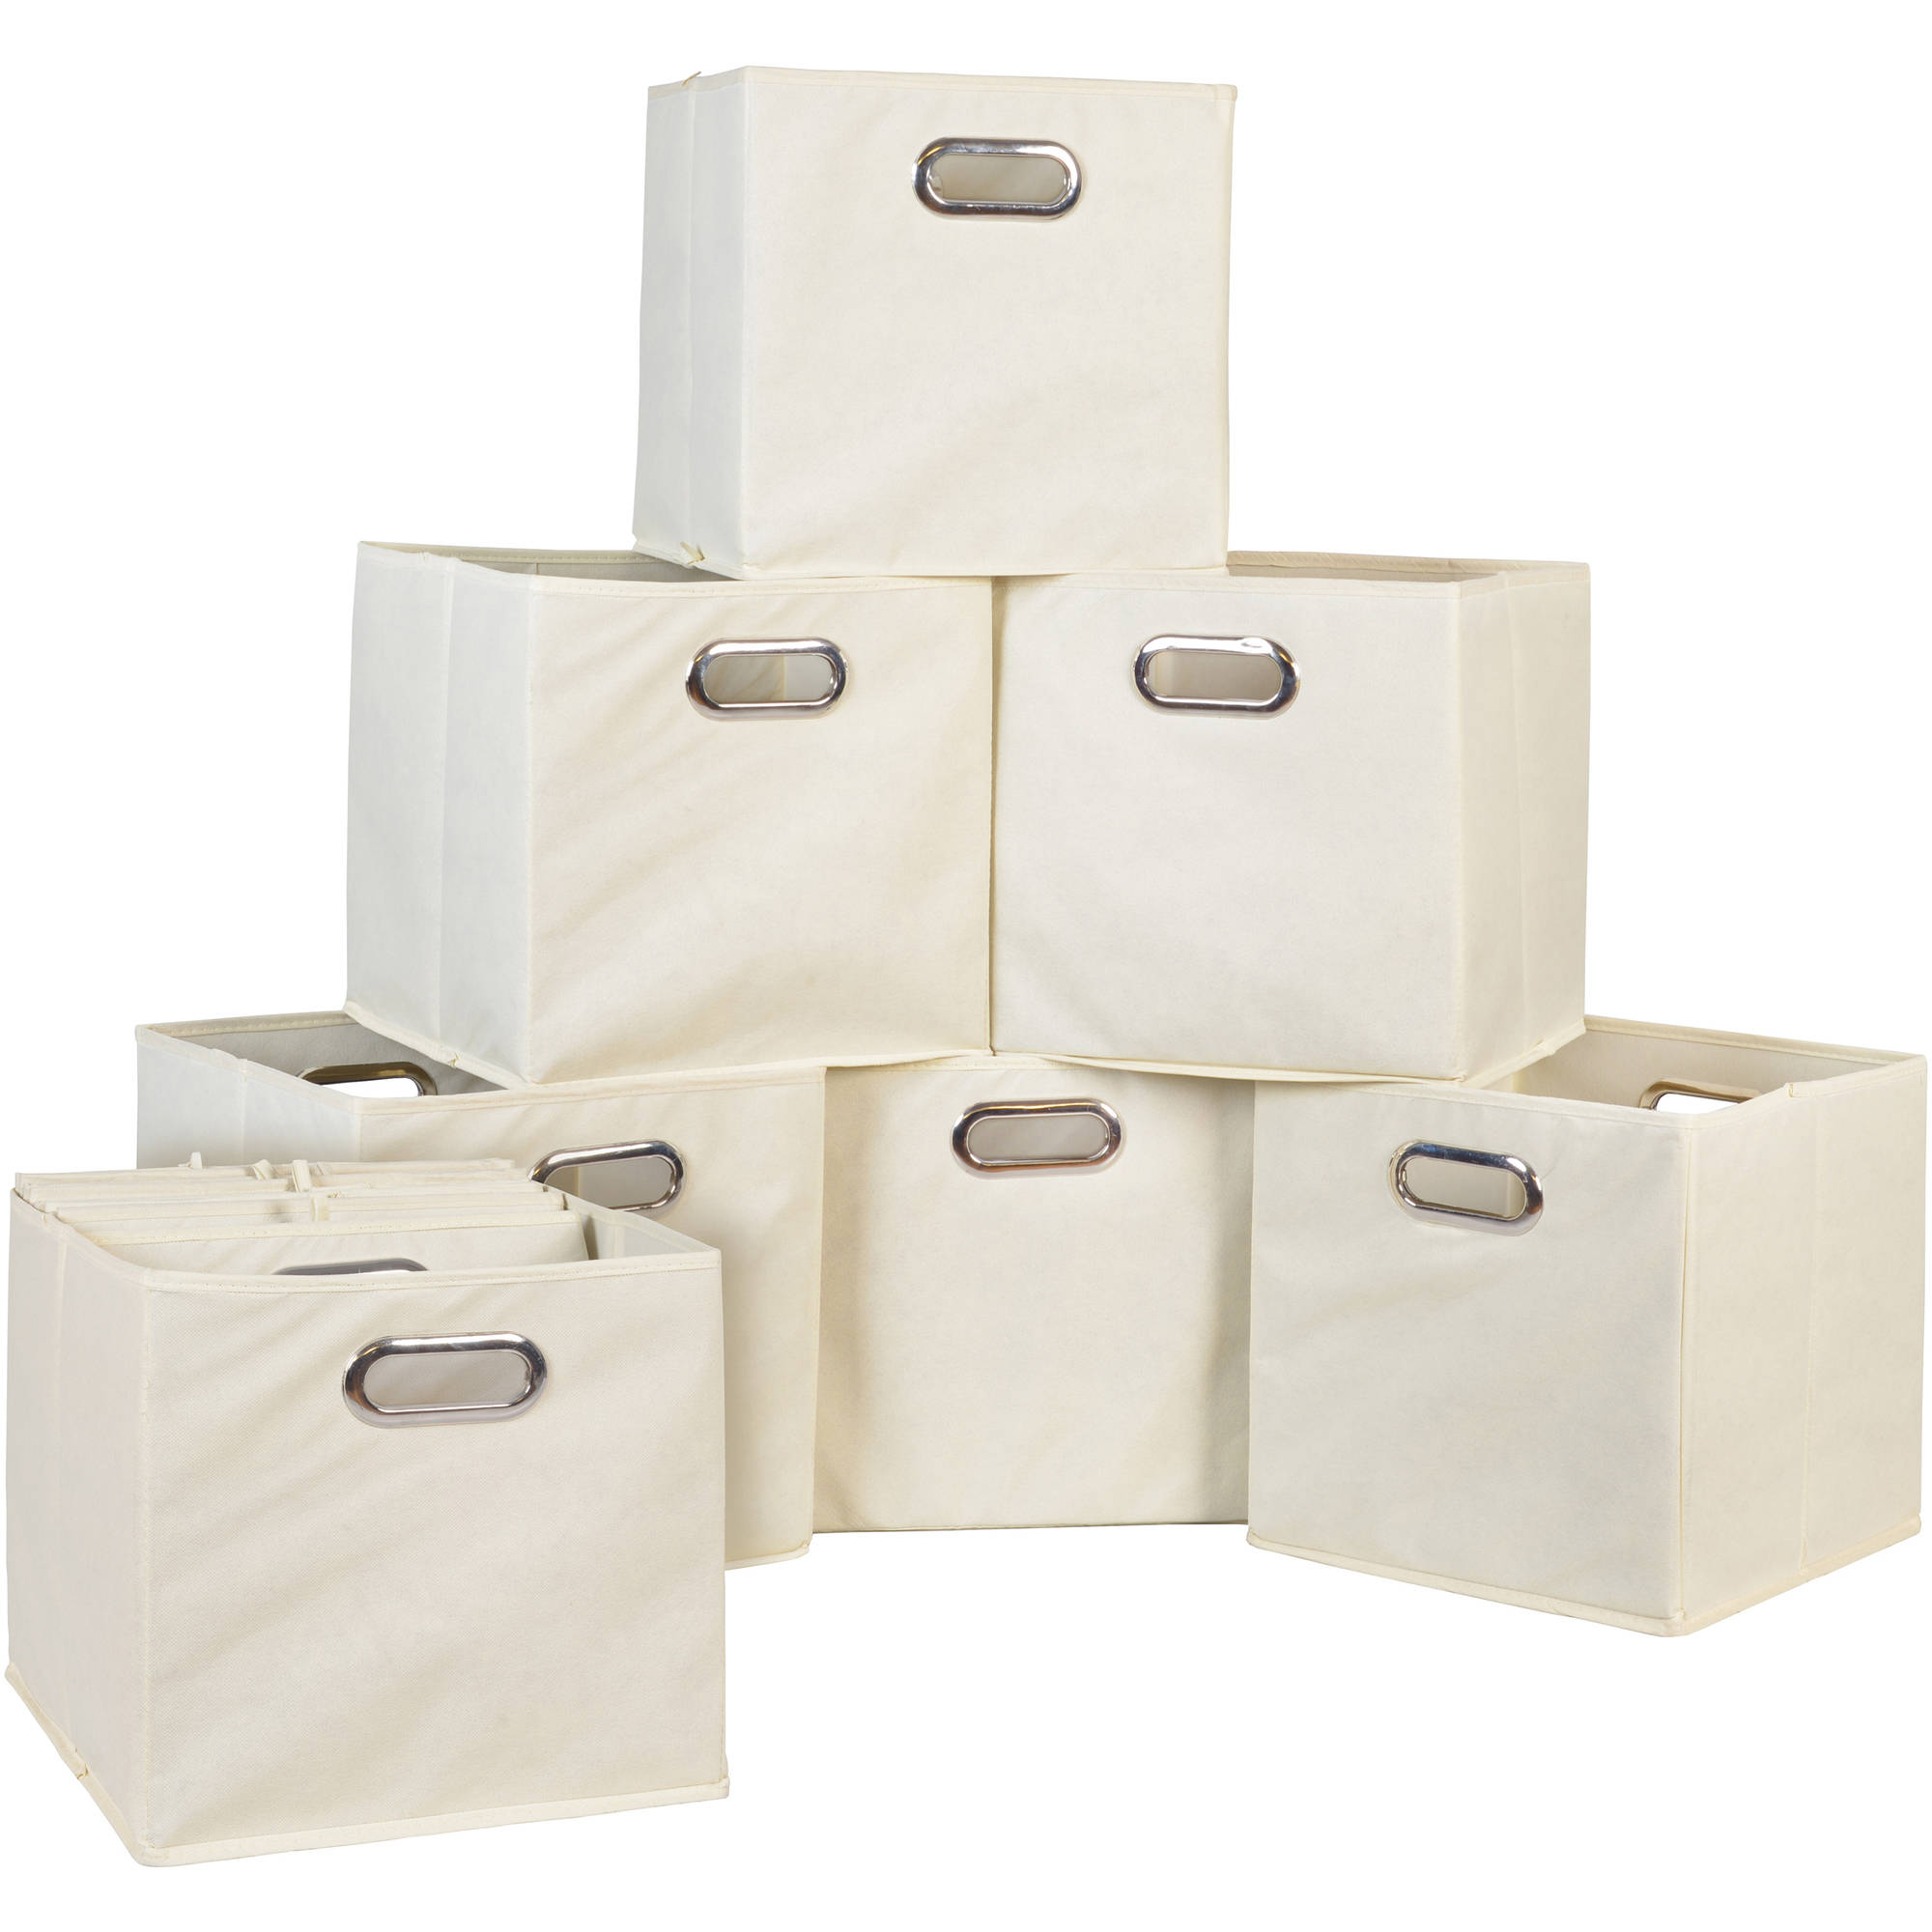 Charmant Niche Cubo Foldable Fabric Storage Bin, Set Of 12   Walmart.com